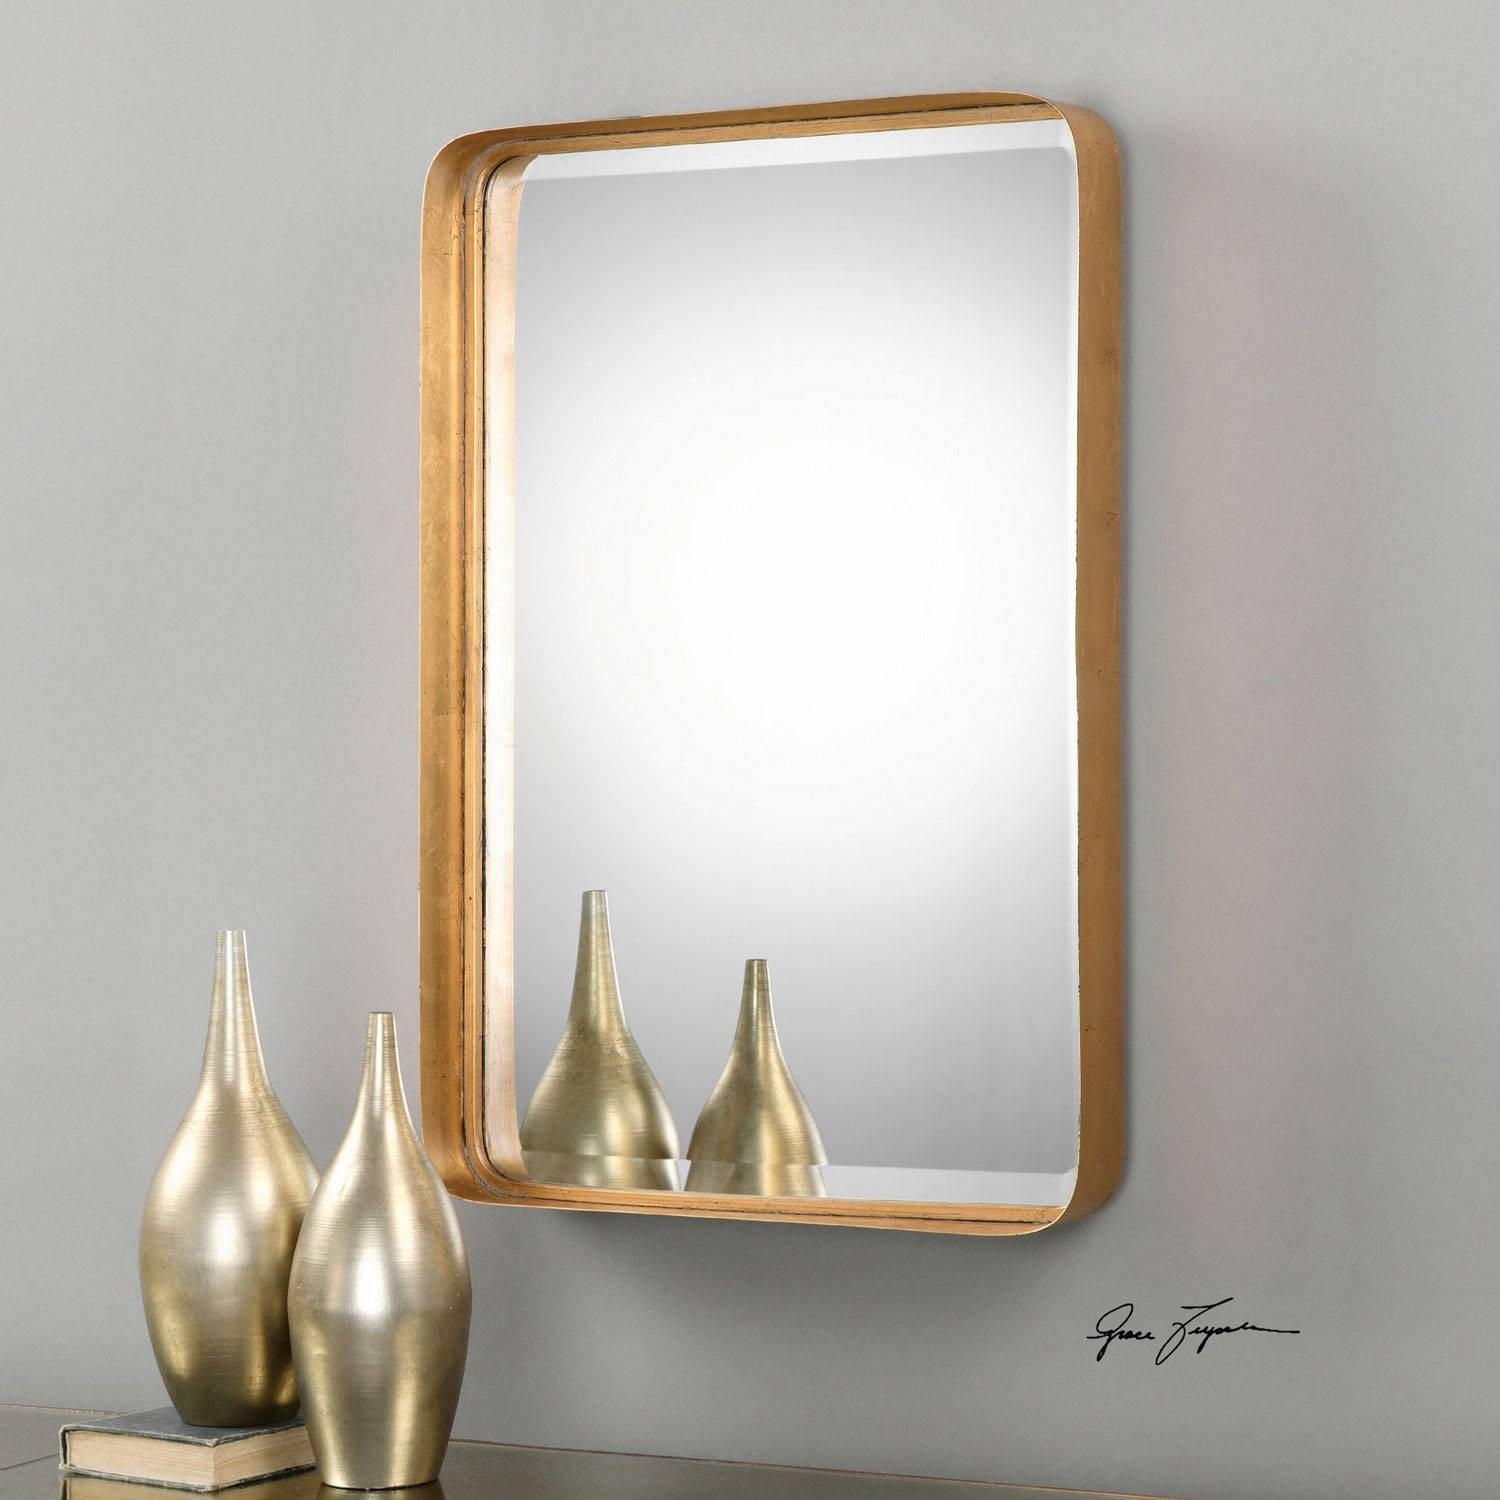 Crofton Antique Gold Mirror Uttermost Wall Mirror Mirrors Home Decor in Antiqued Wall Mirrors (Image 11 of 25)